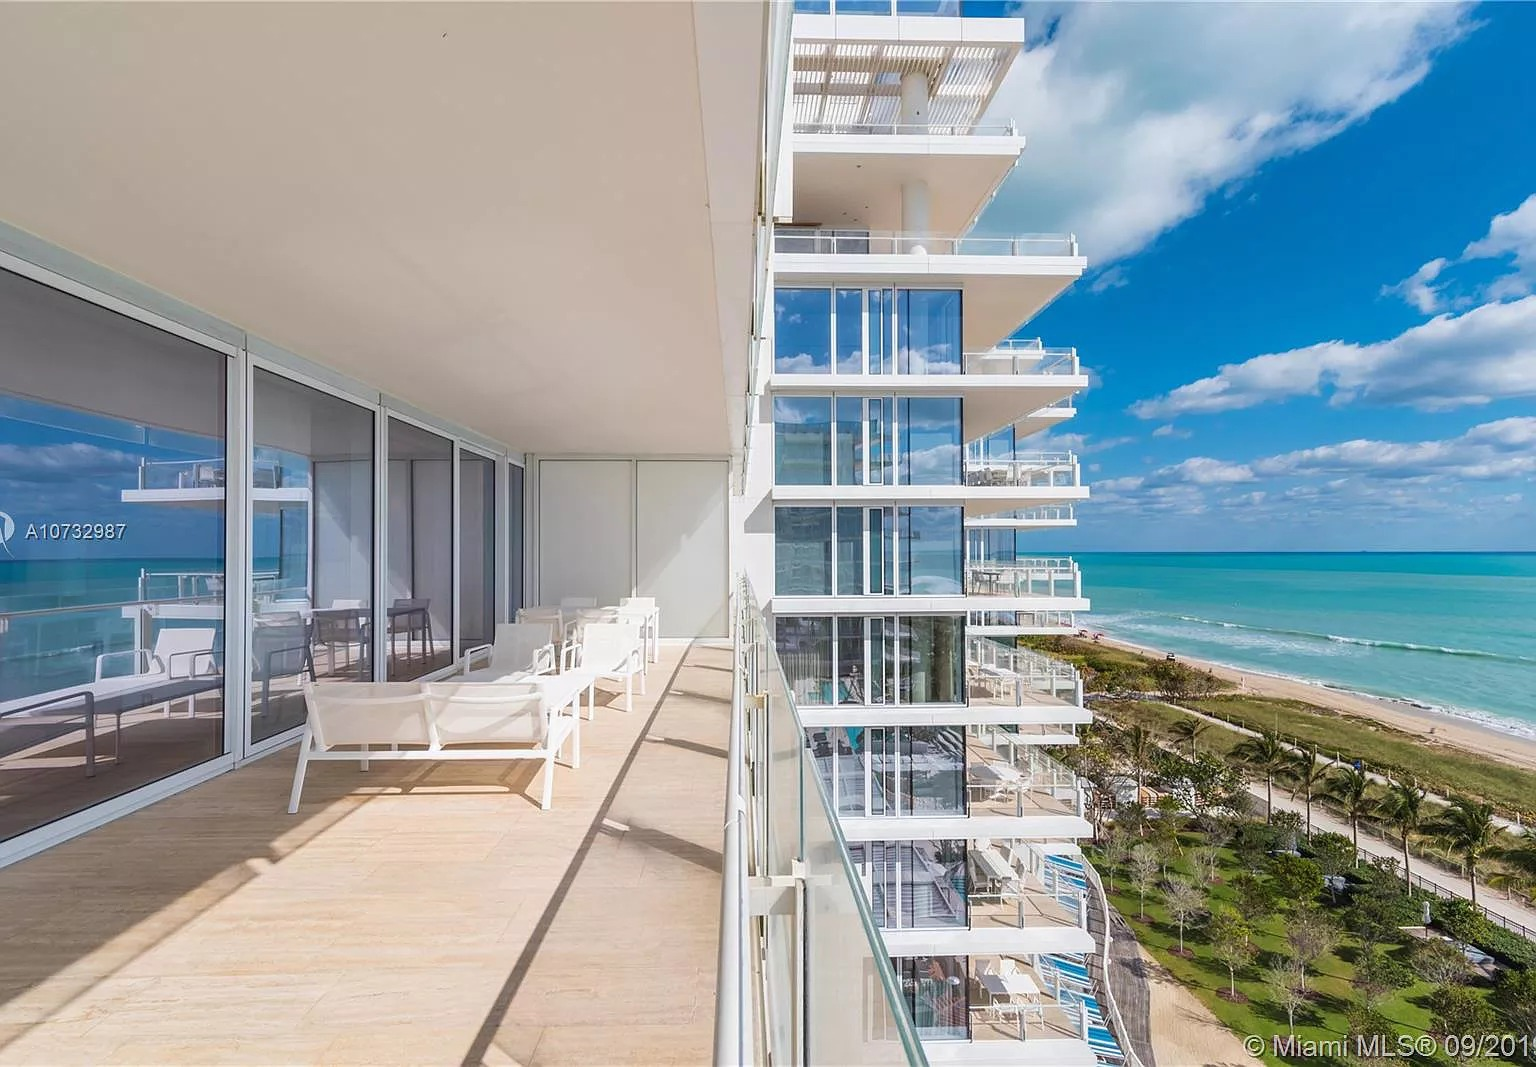 9111 Collins Ave UNIT N811, Surfside, FL 33154 - $6,250,000 home for sale, house images, photos and pics gallery